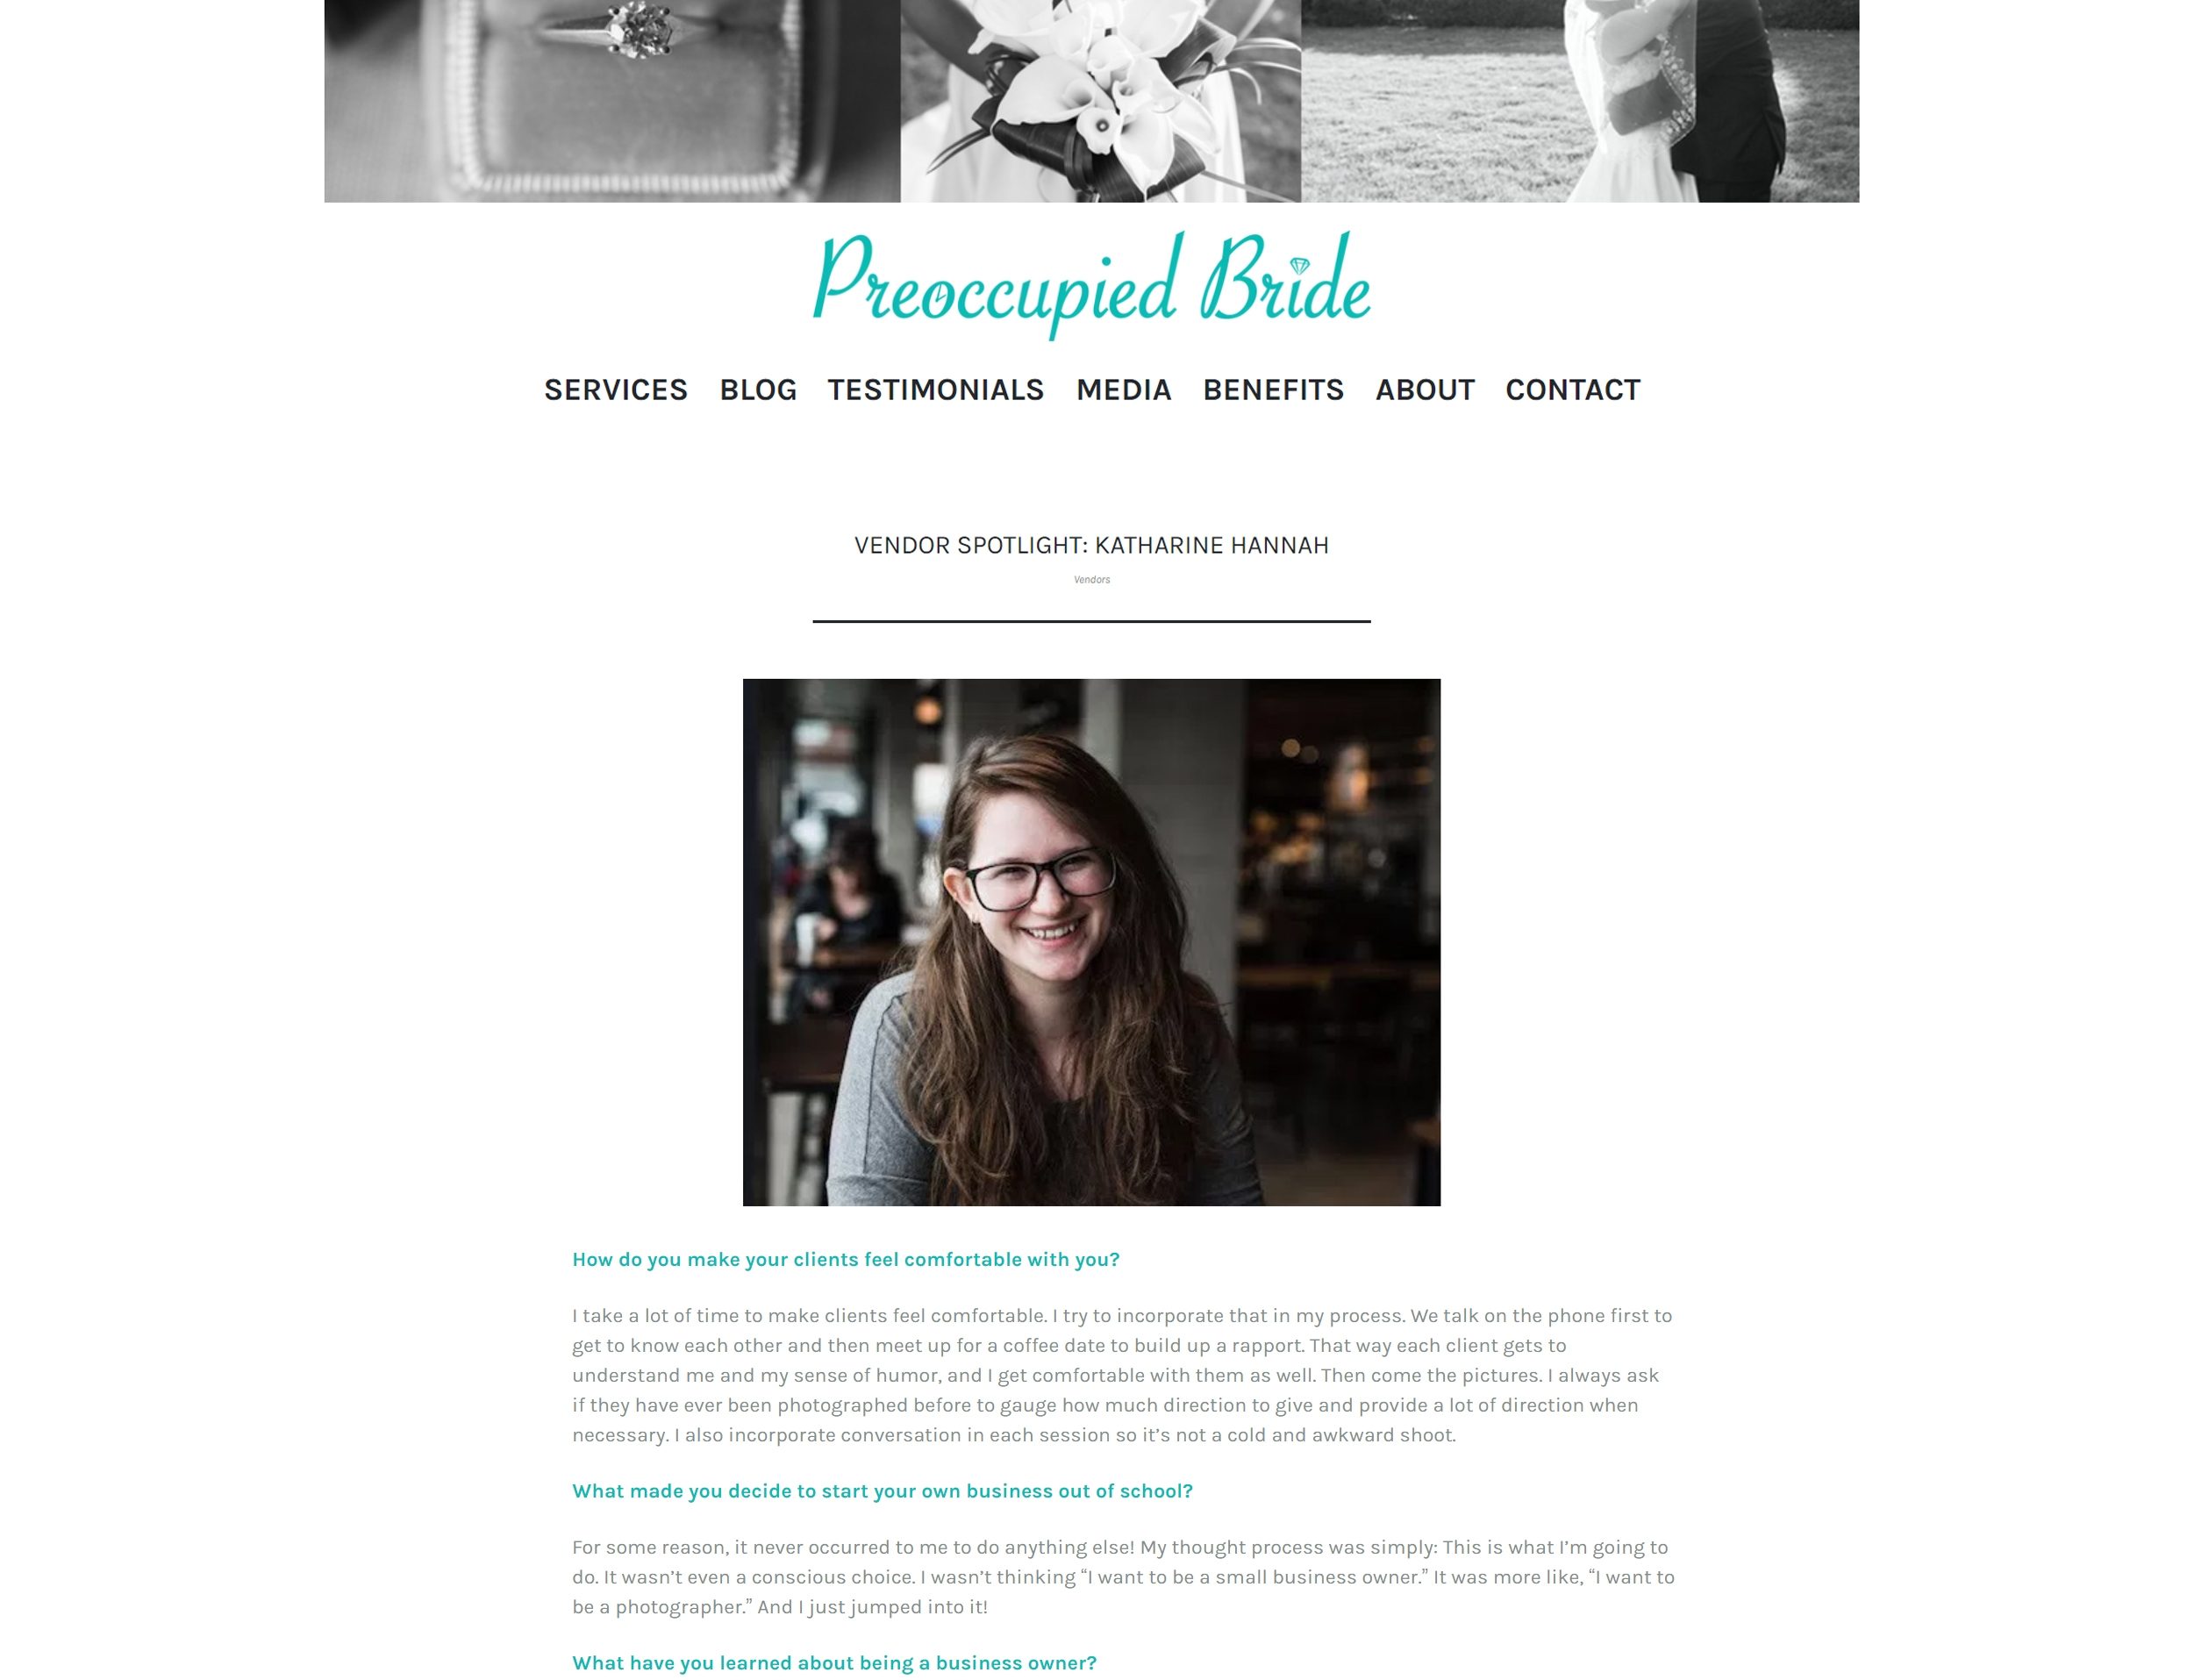 Katharine Hannah Photography interviewed by Preoccupied Bride